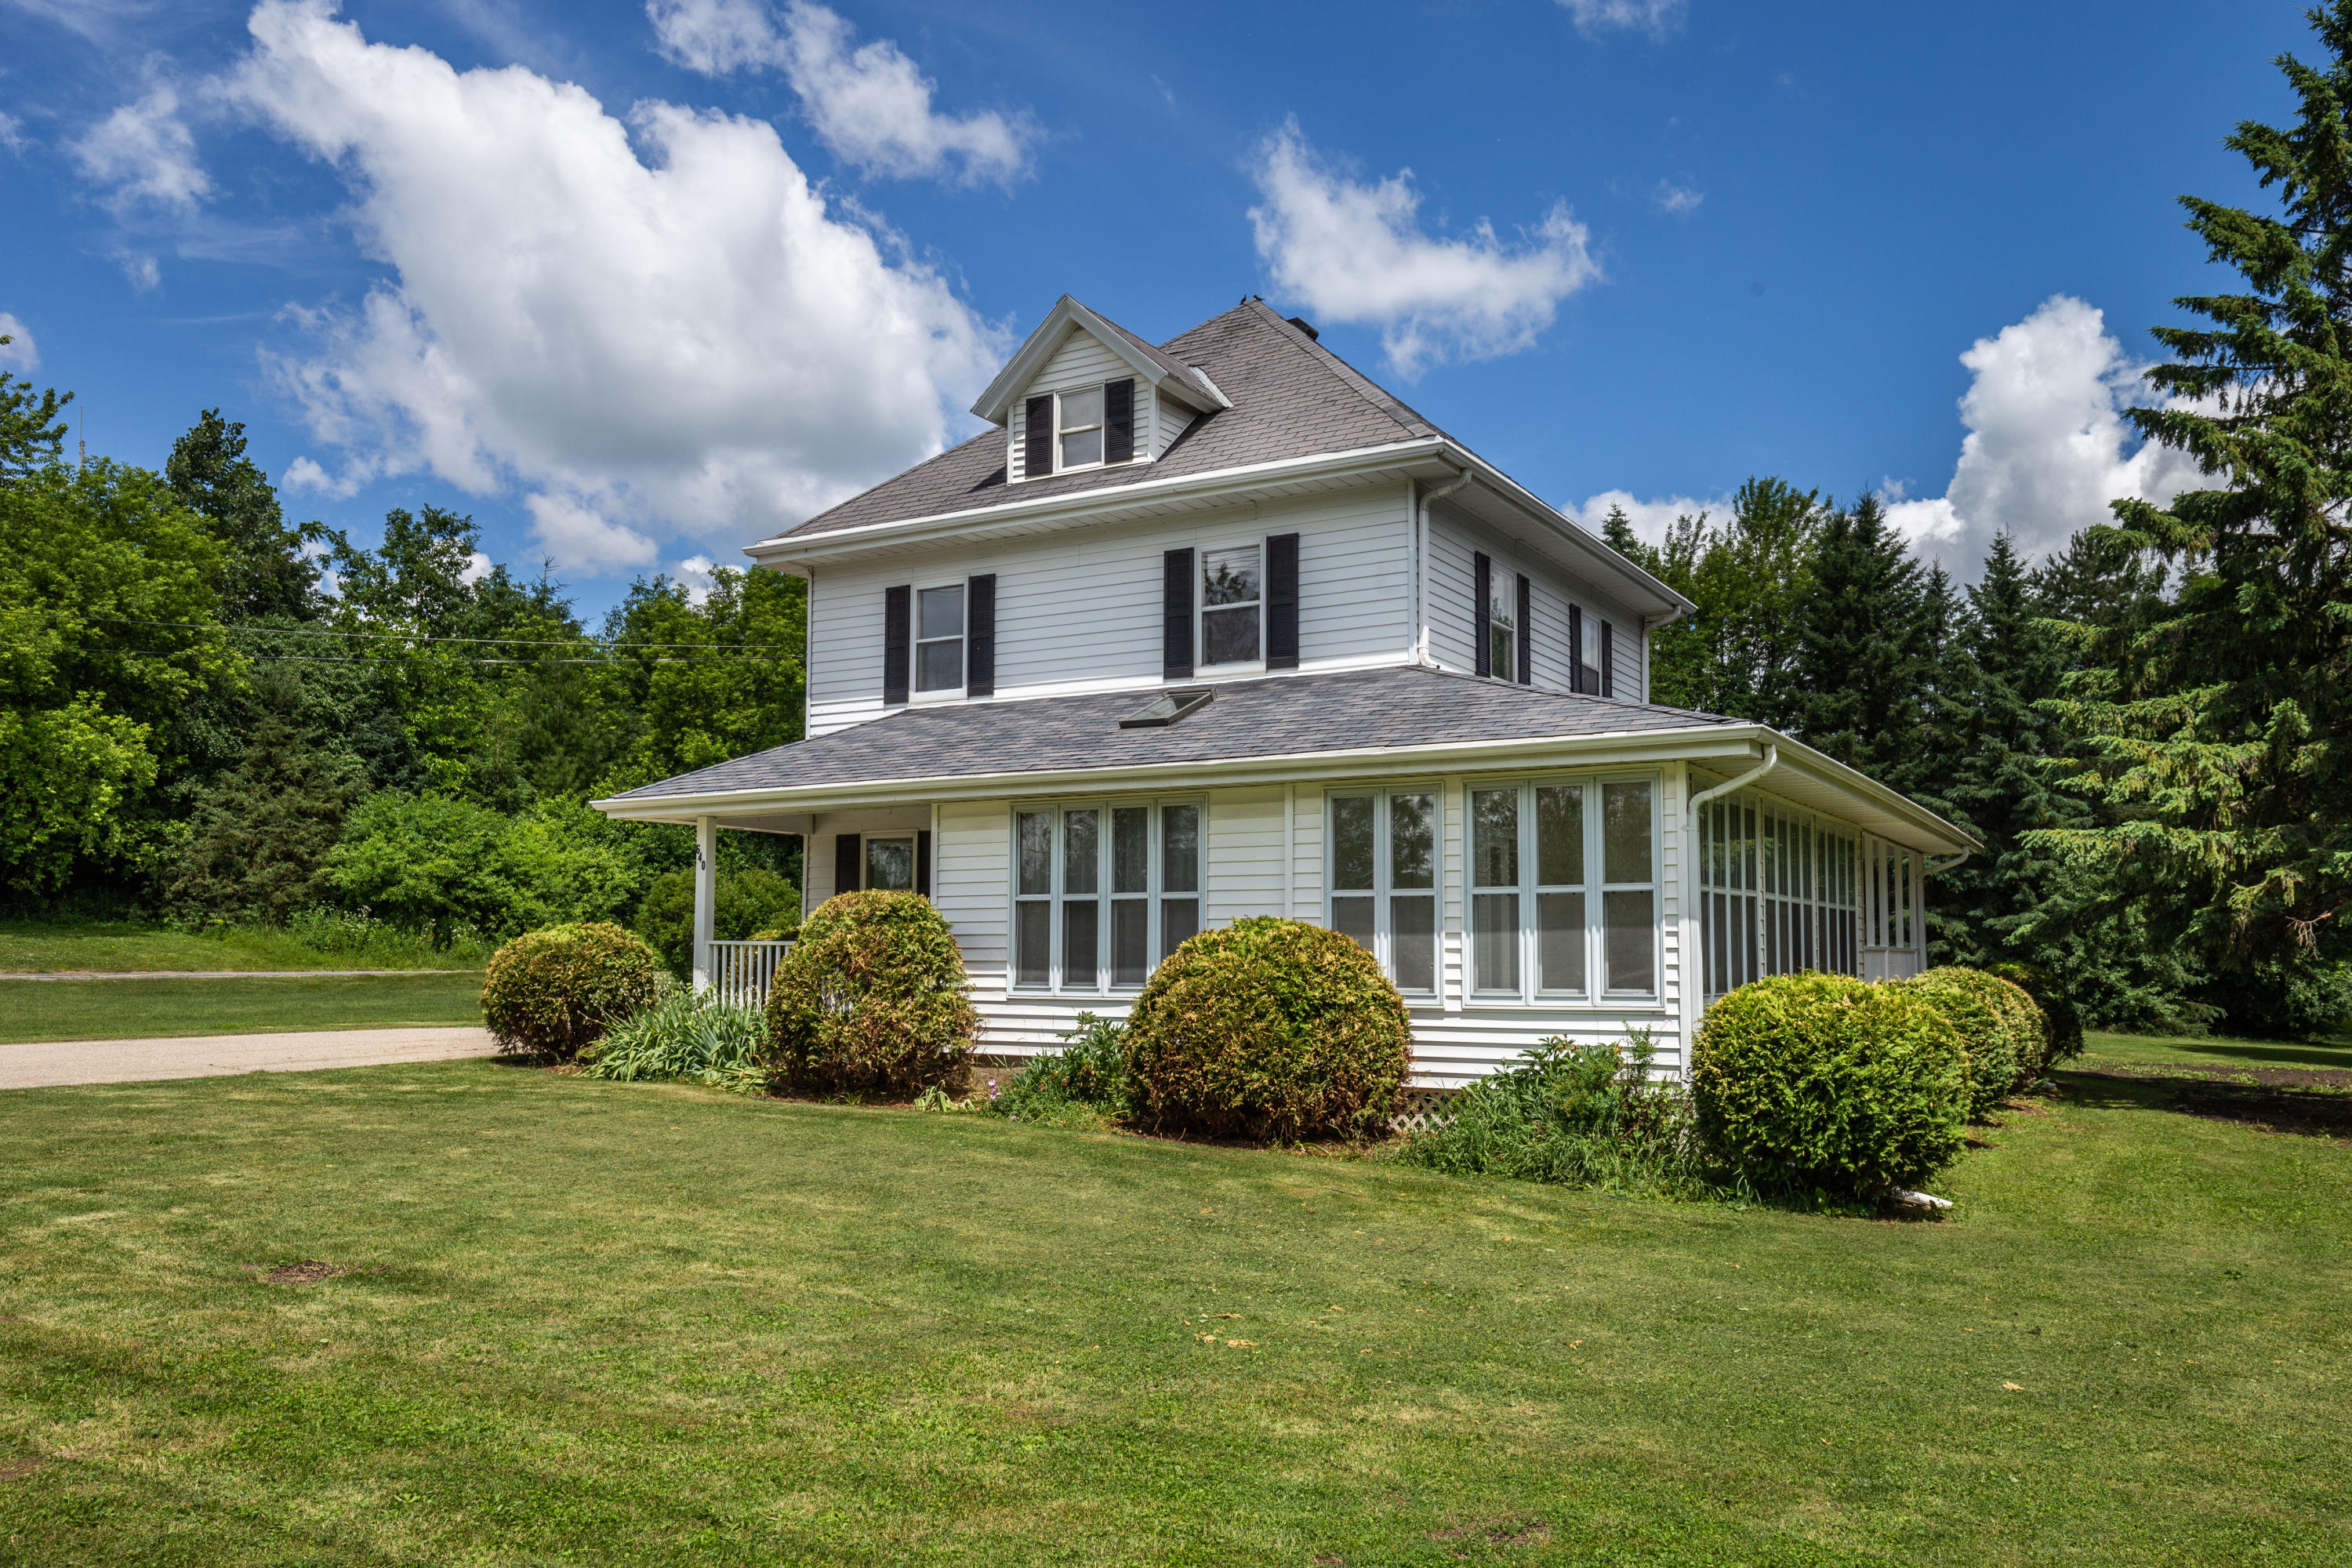 640 Hill St, Hartland, Wisconsin 53029, 3 Bedrooms Bedrooms, 8 Rooms Rooms,2 BathroomsBathrooms,Single-Family,For Sale,Hill St,1695633